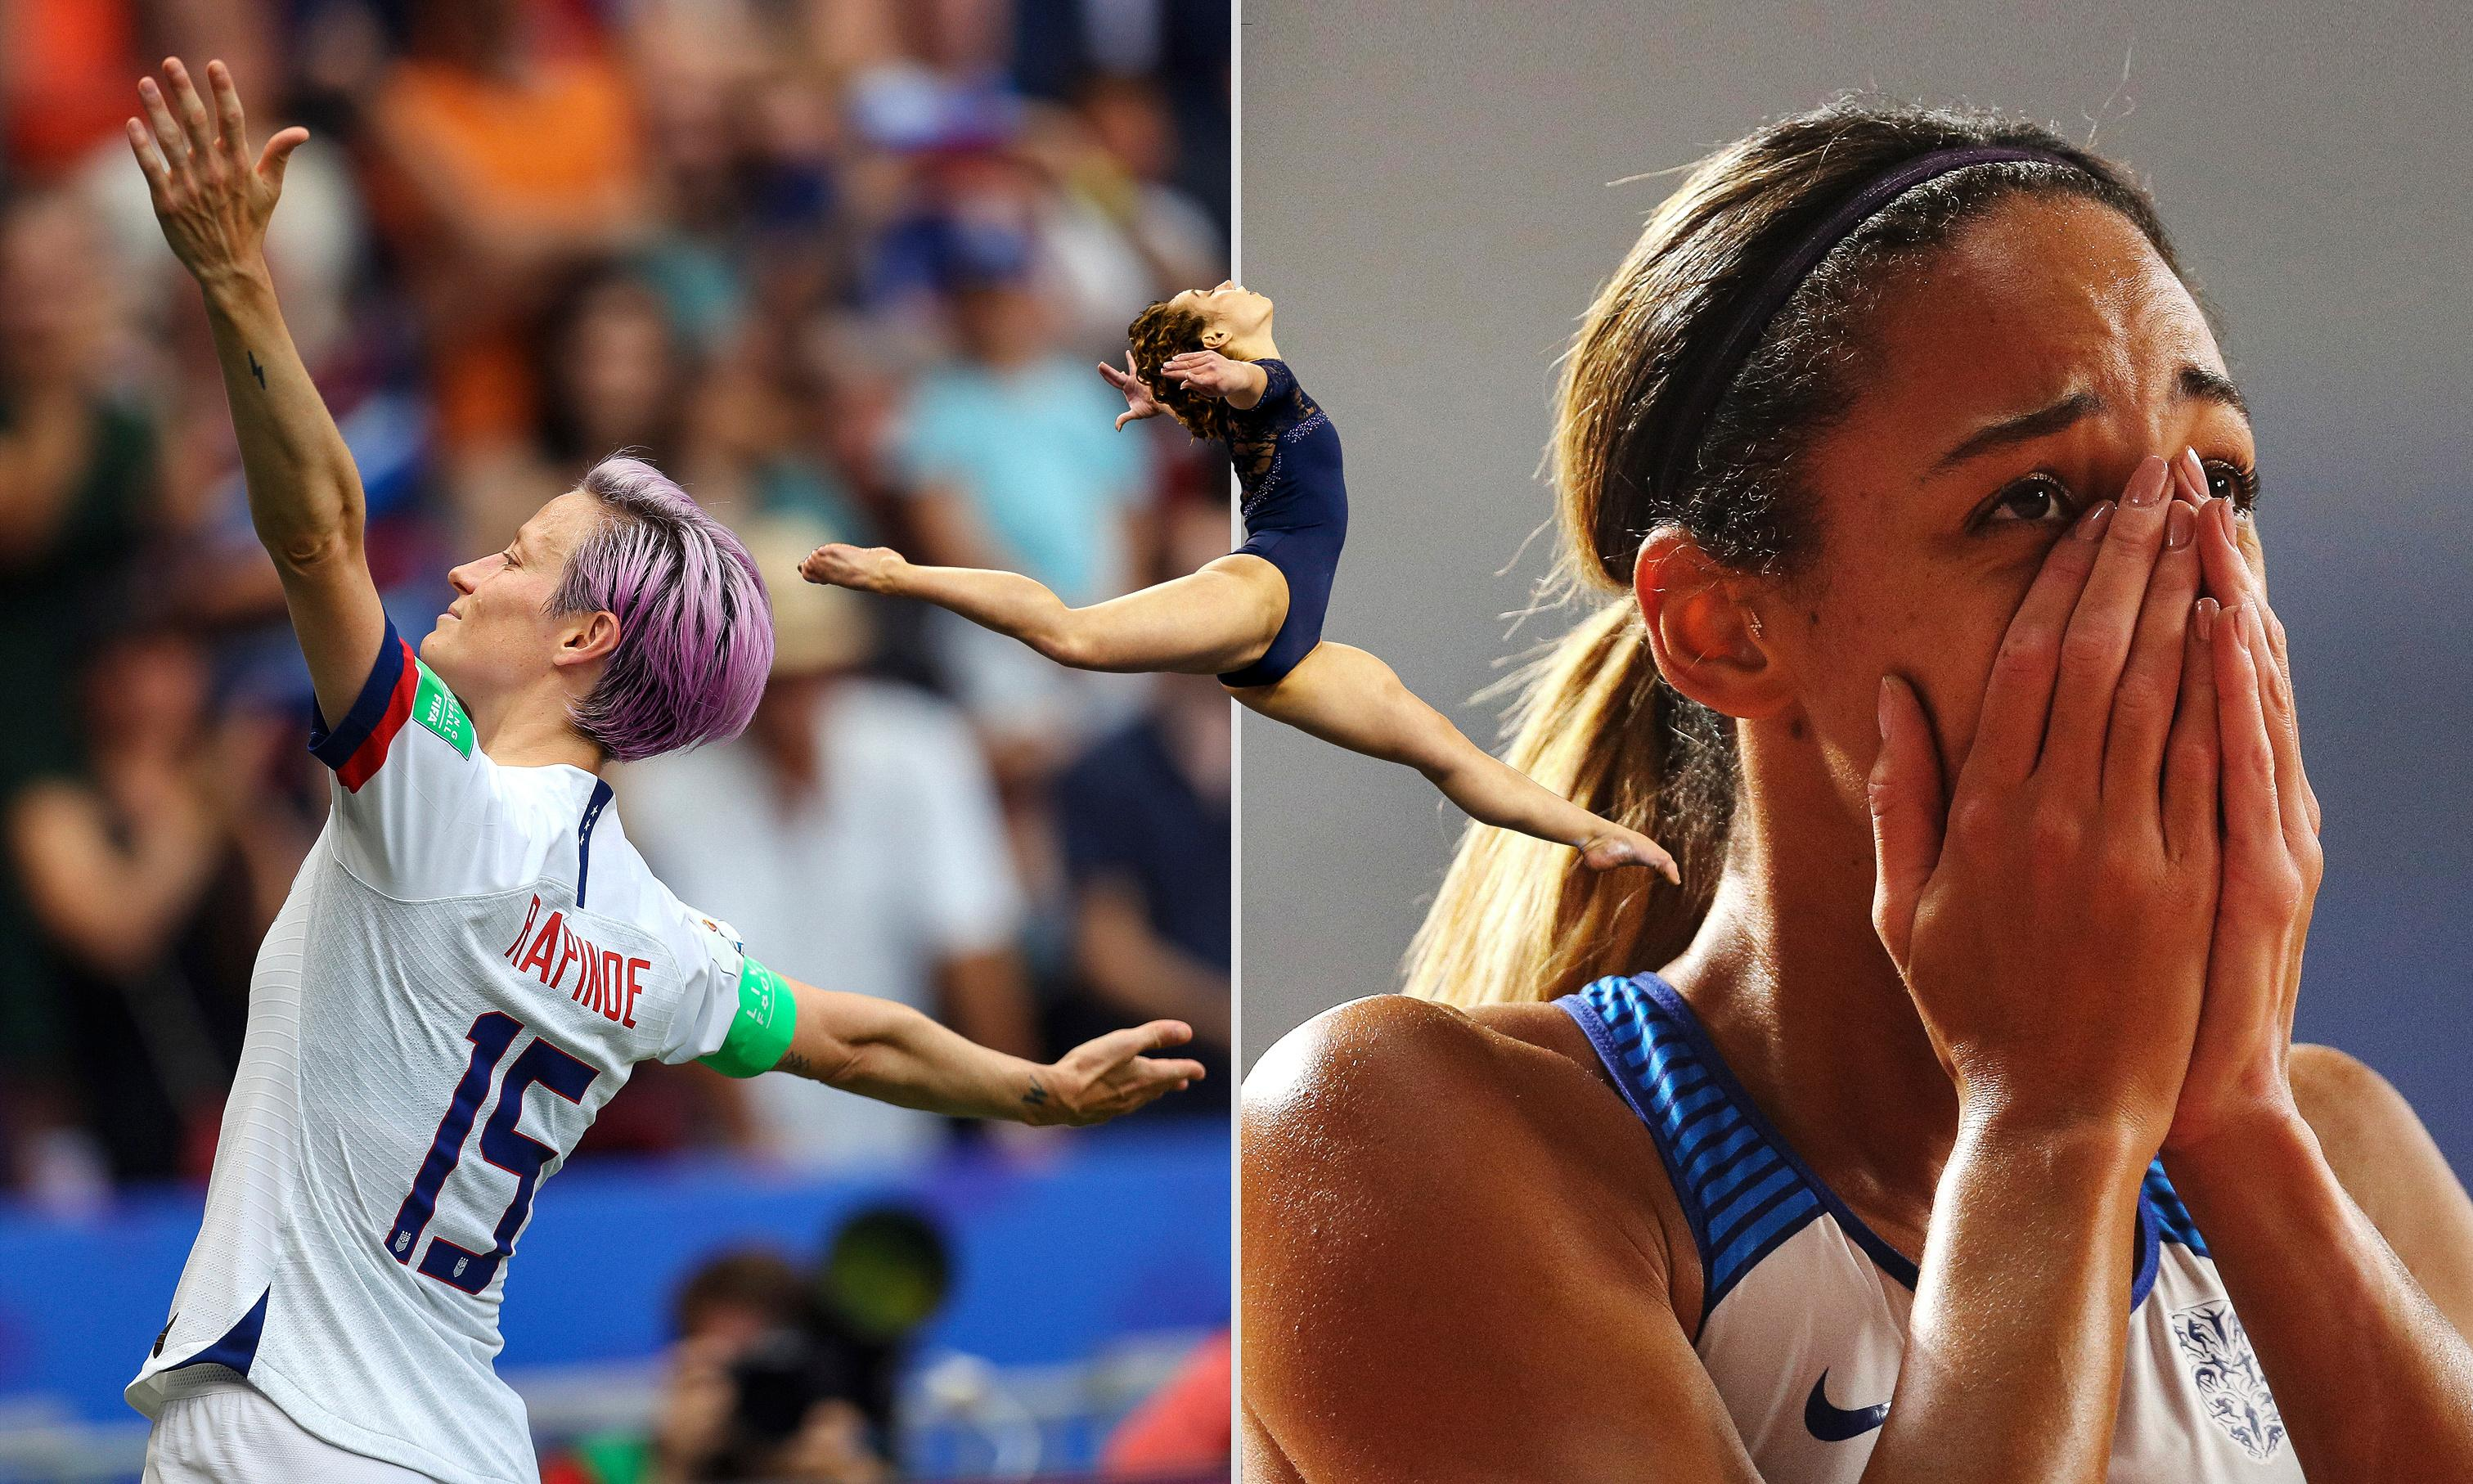 Powerful photographs perfectly illustrate rise of women's sport